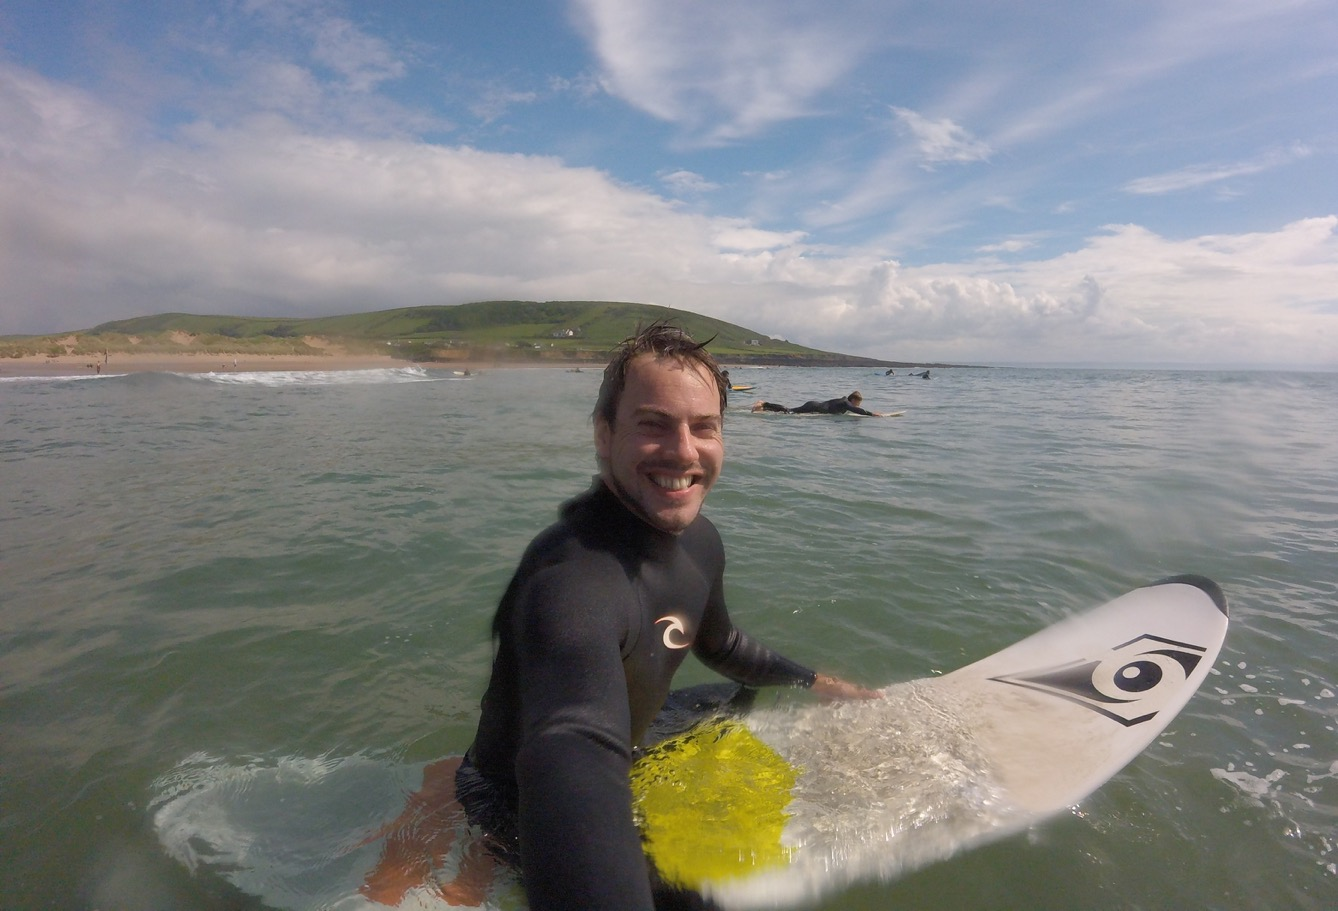 Sat waiting for waves - surfing in Croyde, Devon - GoPro